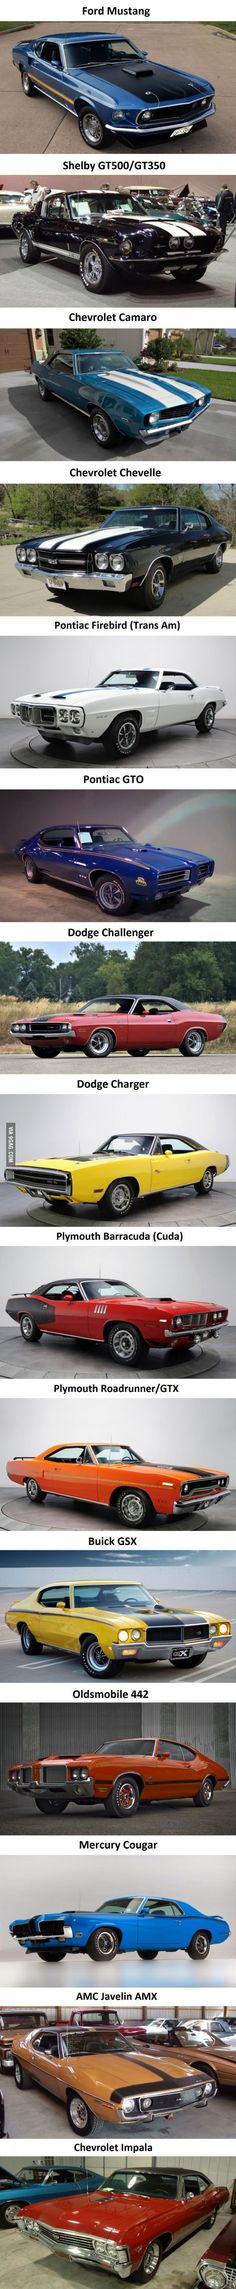 The Most Iconic Muscle Cars - dream cars - Auto Pontiac Gto, Chevrolet Chevelle, Chevy, Mustang Shelby, Ford Mustang, Sweet Cars, American Muscle Cars, Amazing Cars, Awesome